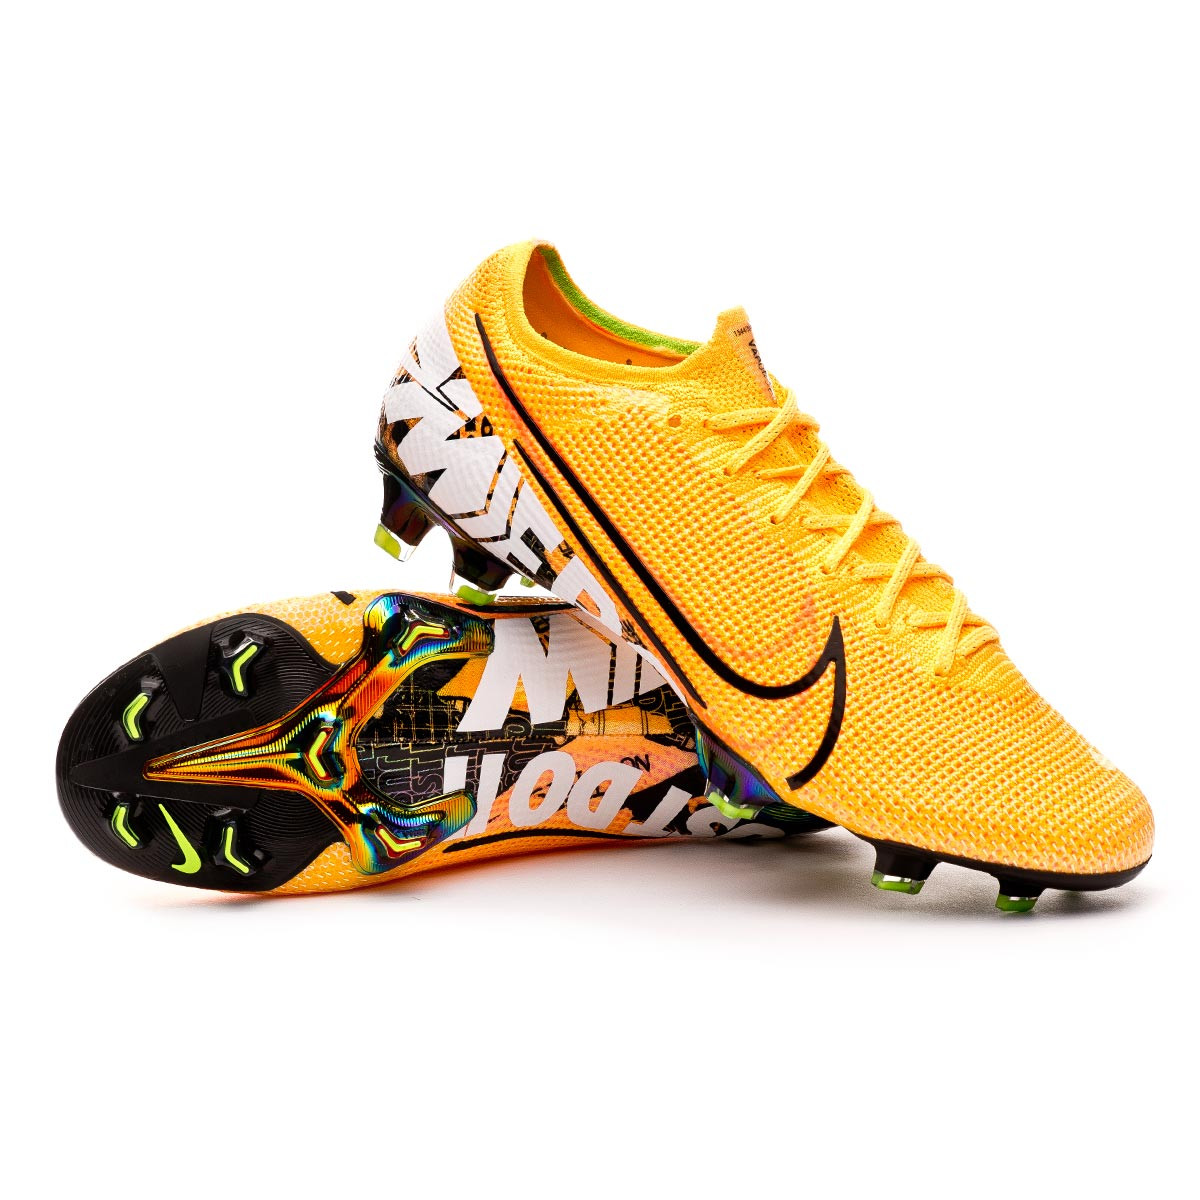 authorized site hot sale online coupon codes Nike Mercurial Vapor XIII Elite Special Edition FG Football Boots